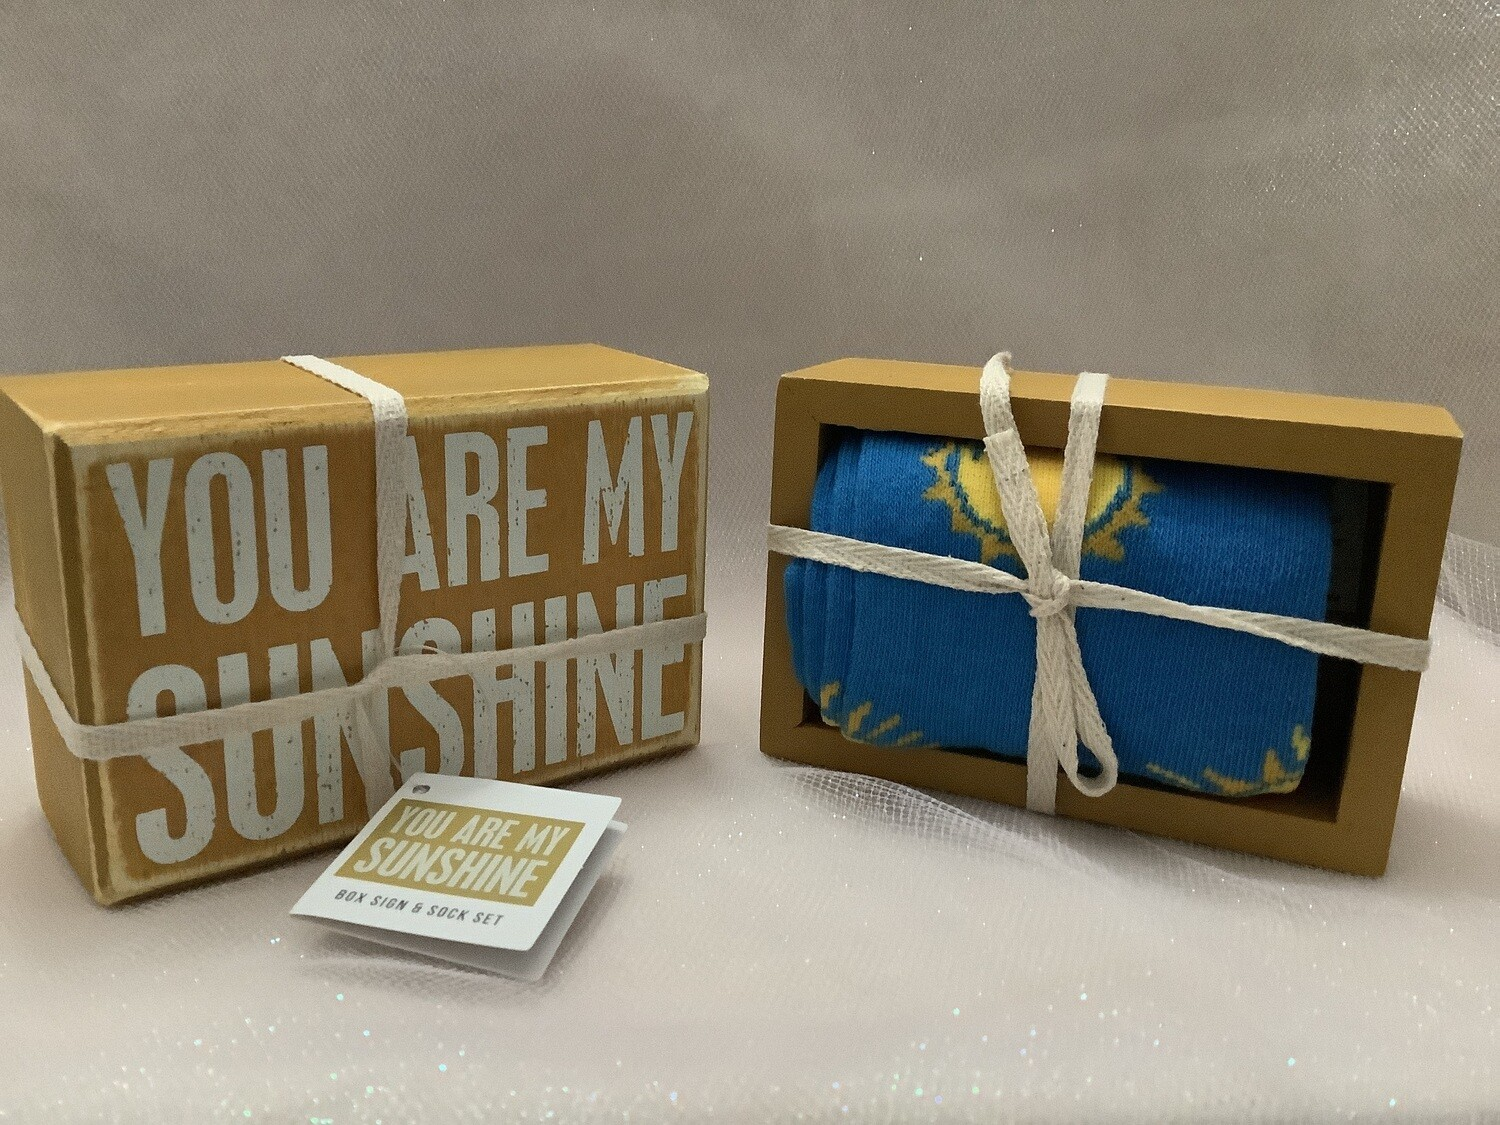 Box Sign and Sock Set - You Are My Sunshine